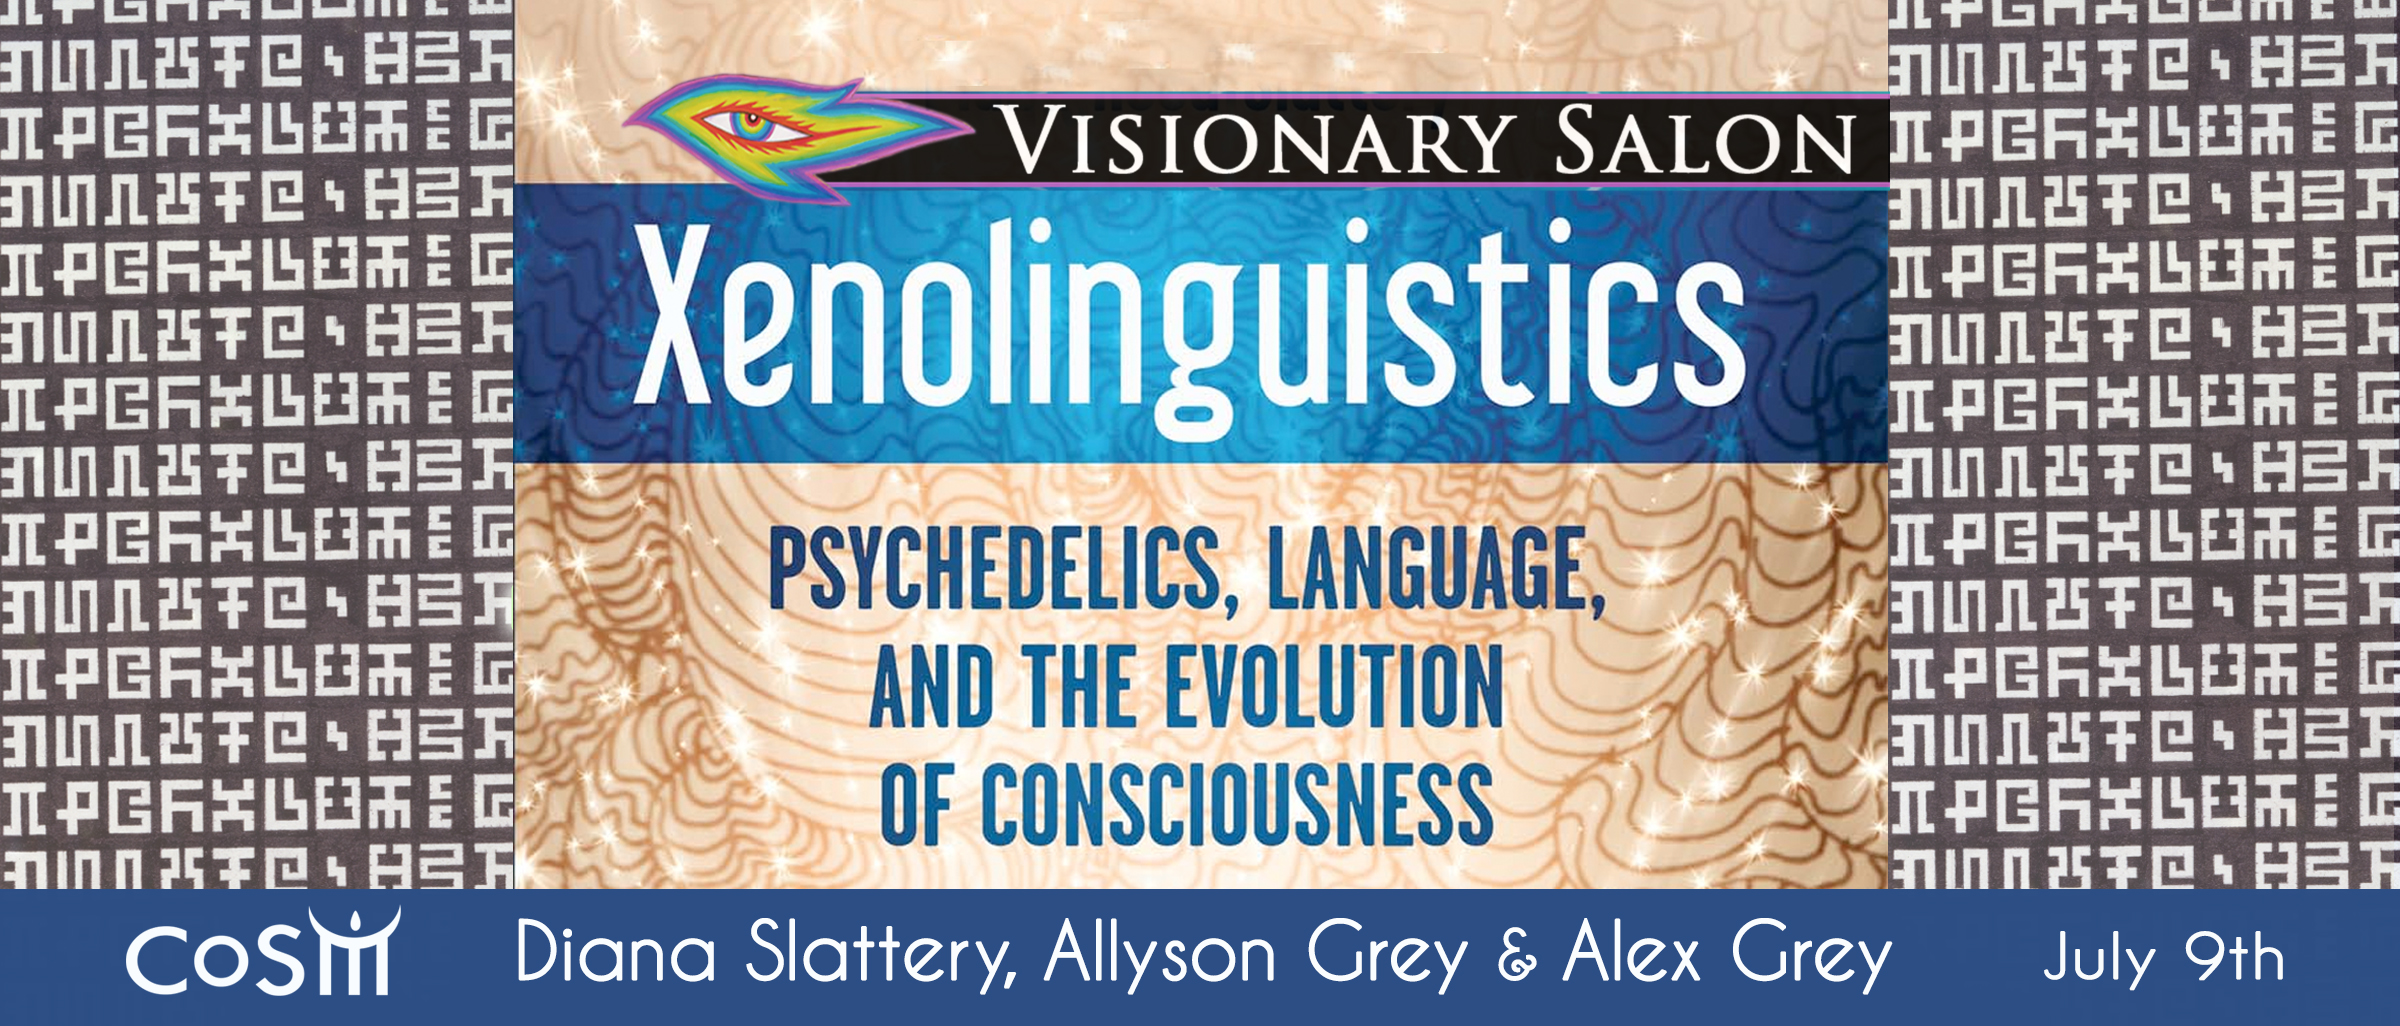 Join us for a discussion on XENOLINGUISTICS: Psychedelics, Language & the  Evolution of Consciousness